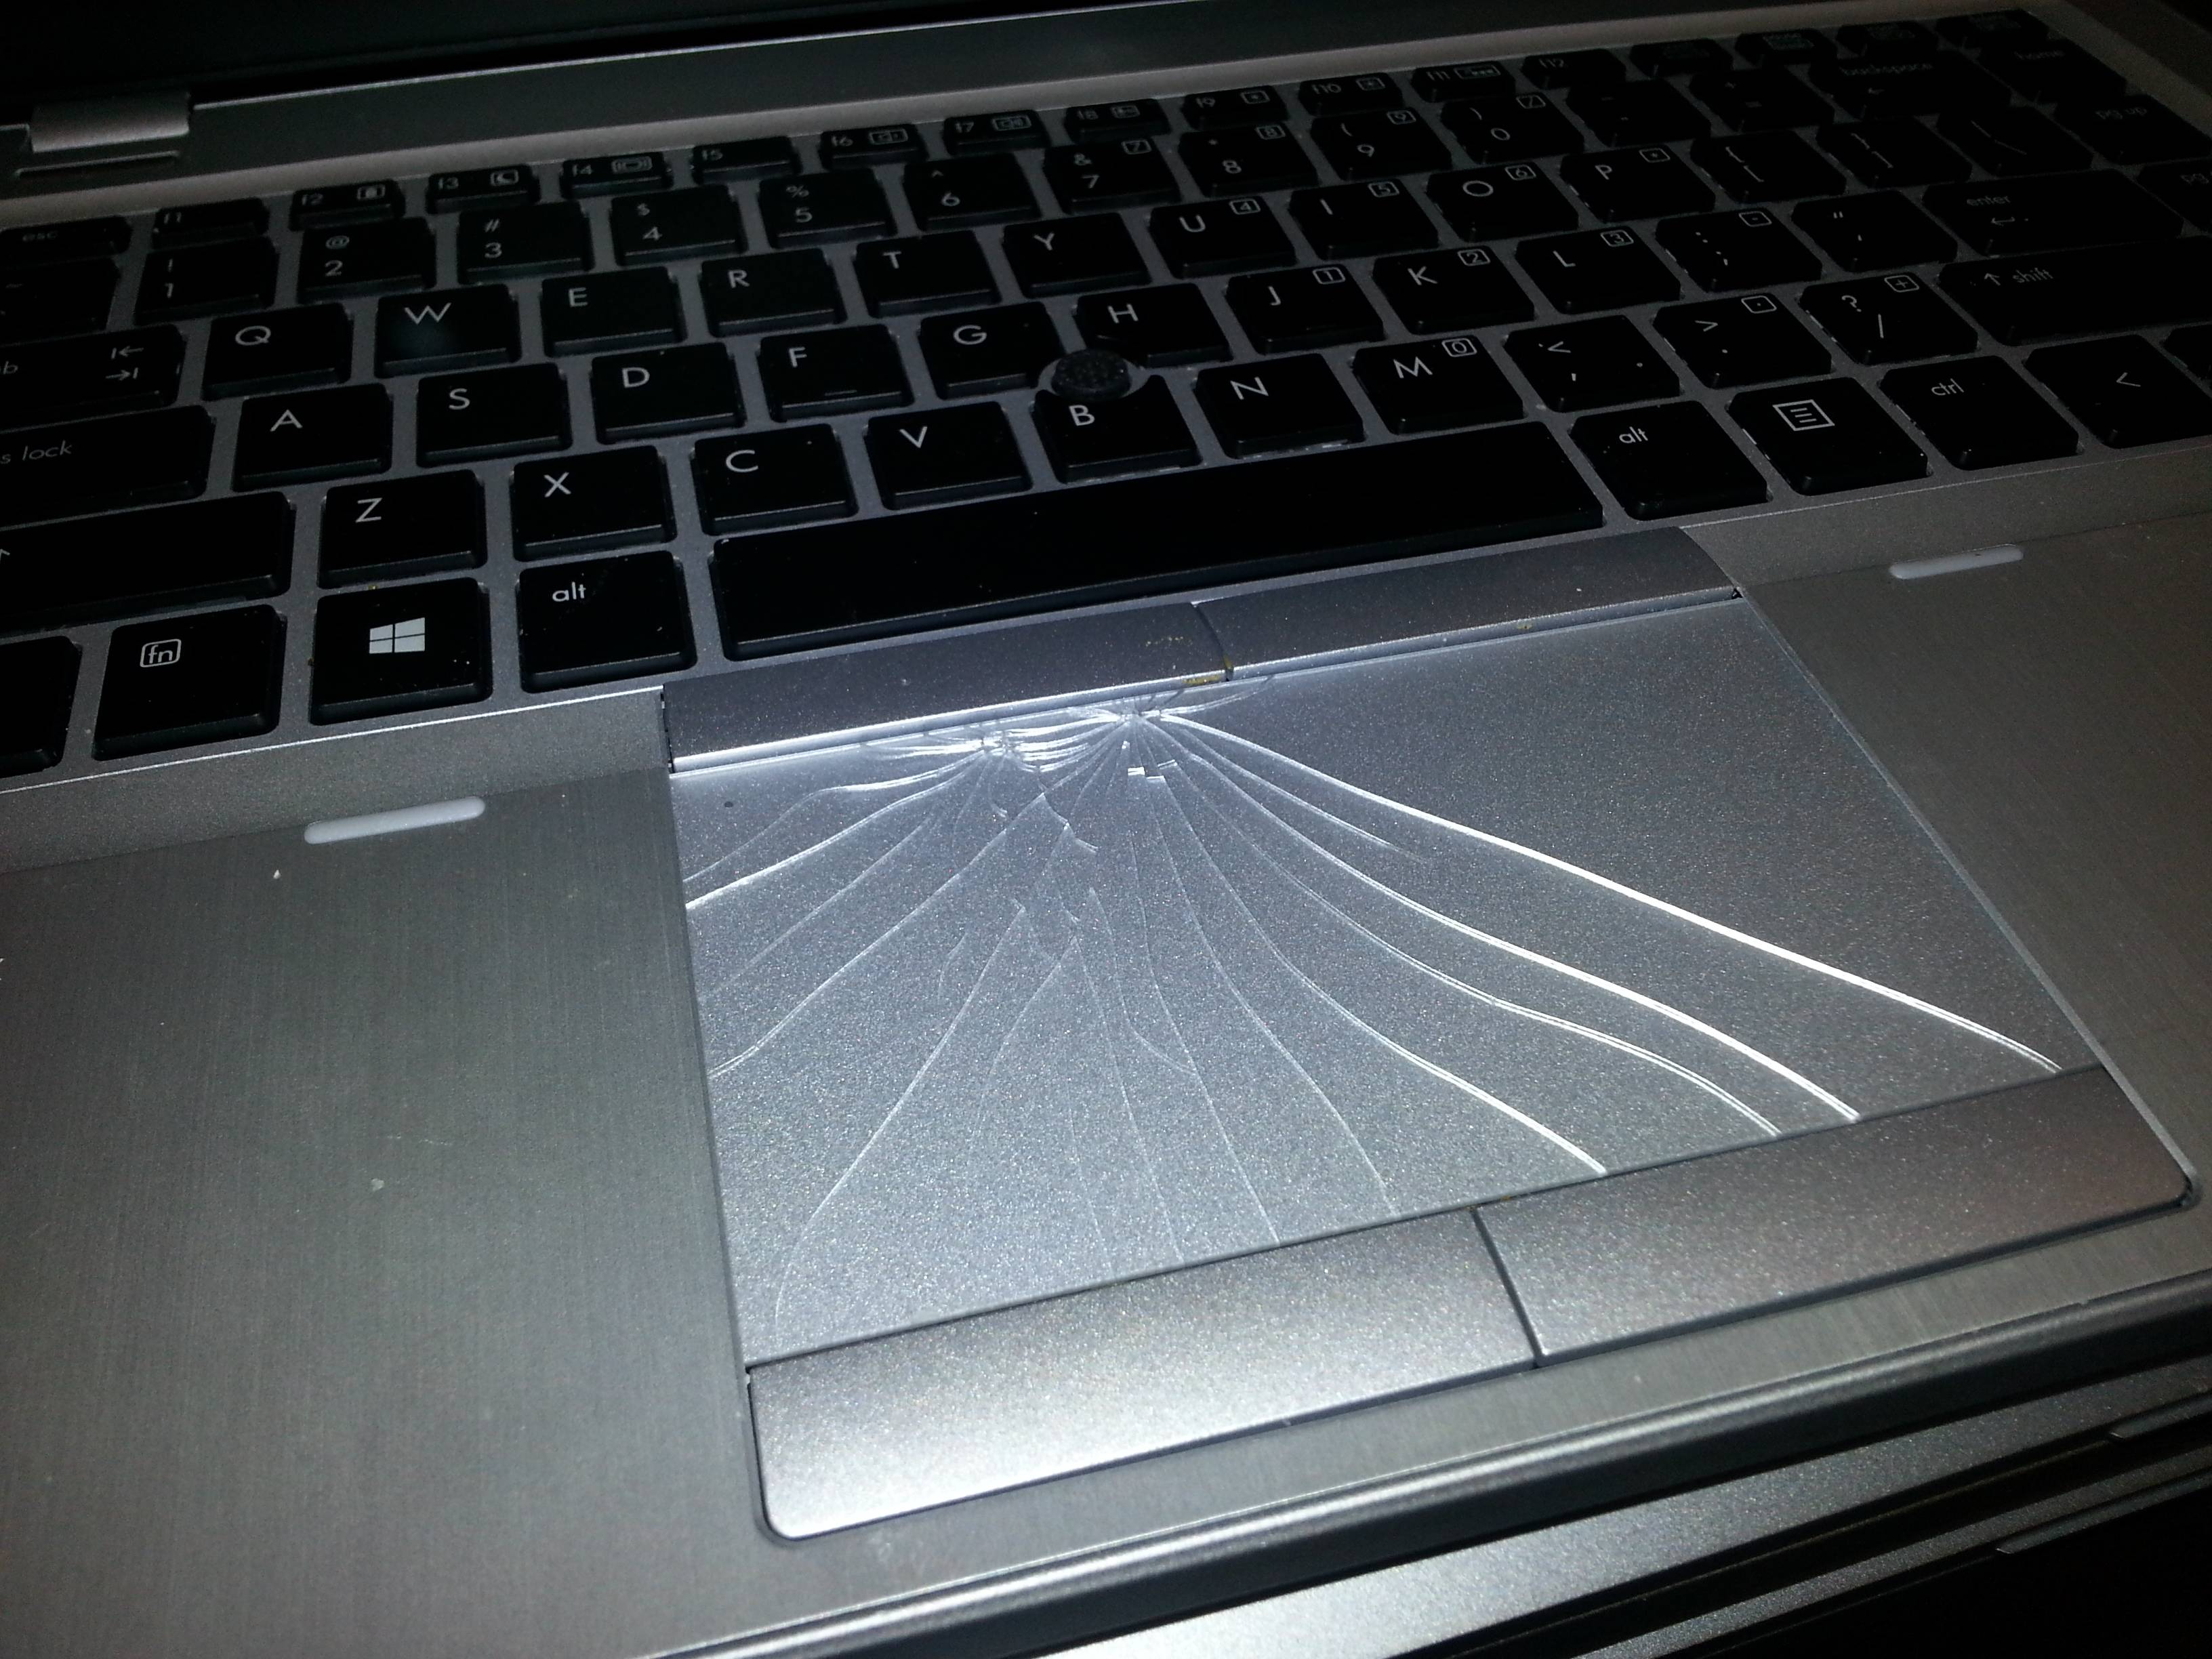 cracked_touchpad